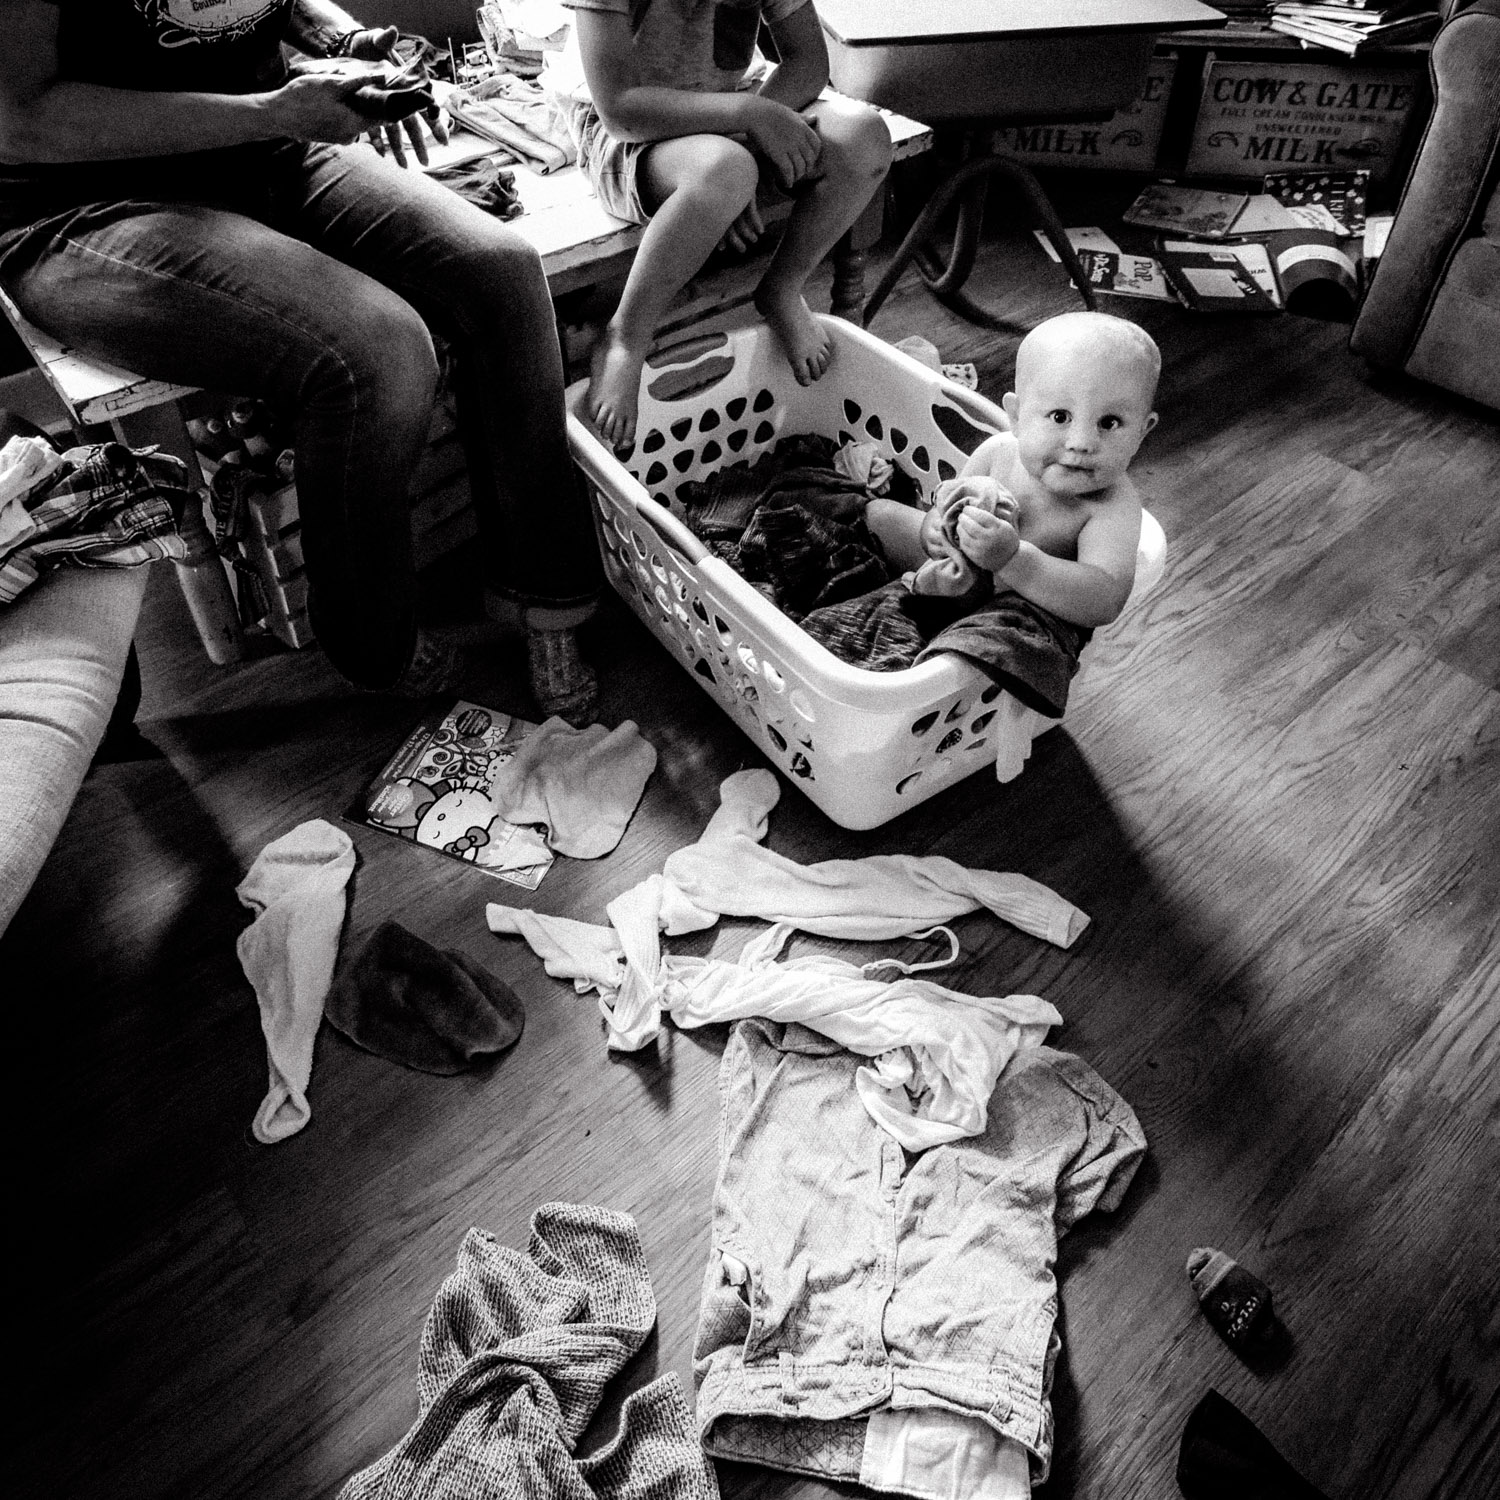 Image: I love walking into a chaotic scene and making a portrait from it. This picture has some tech...